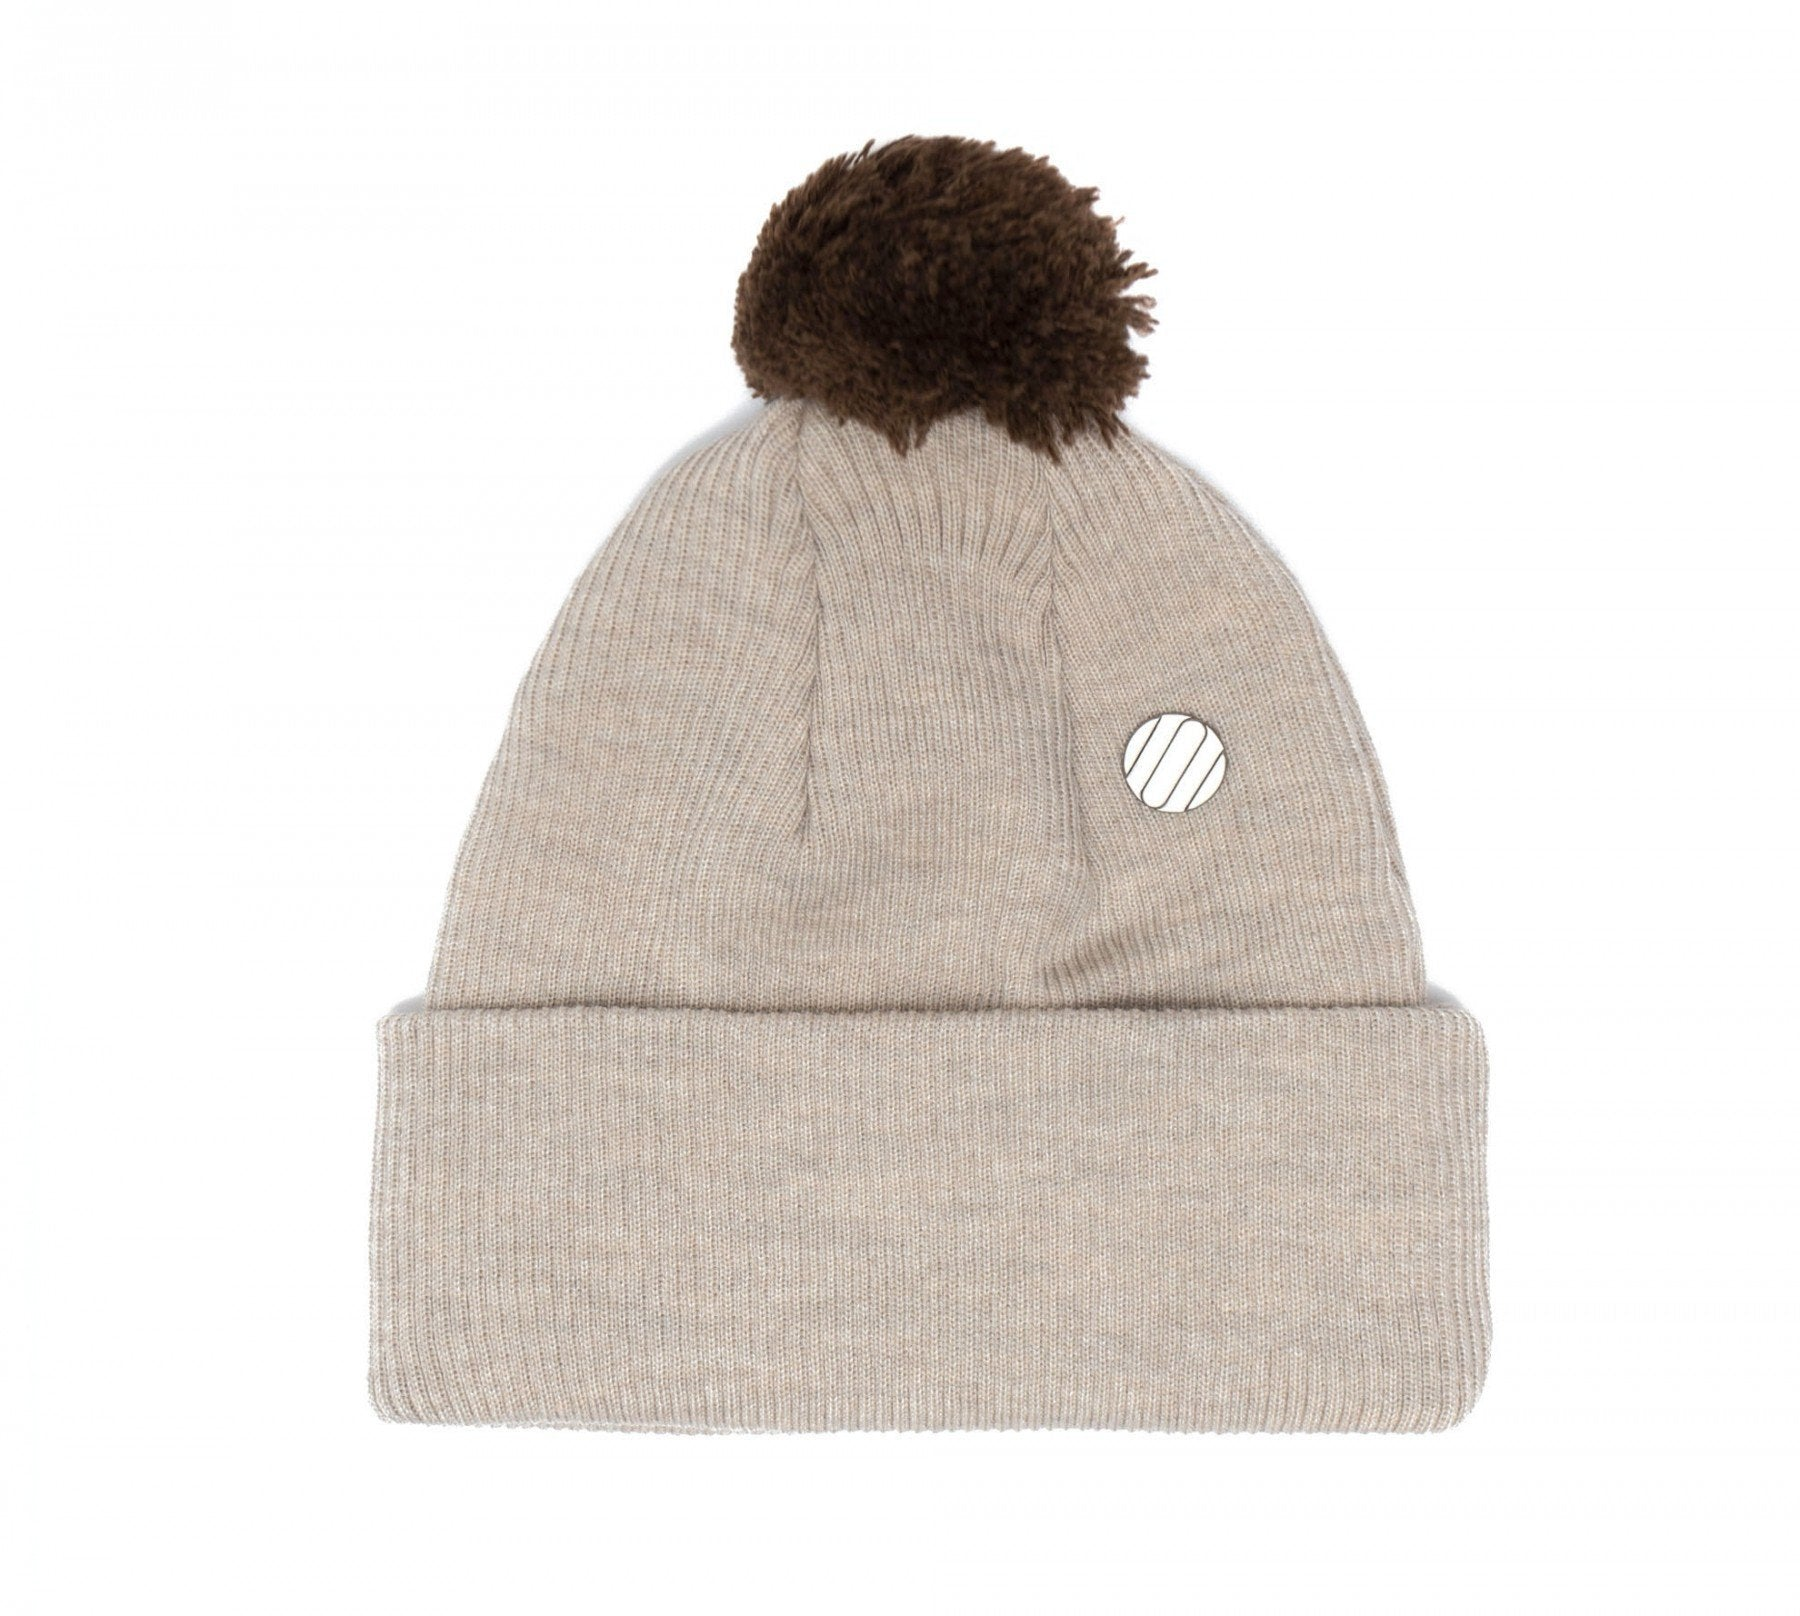 Costo - Wau Beanie - 100% Merino Wool - Made in Finland - Weekendbee - sustainable sportswear